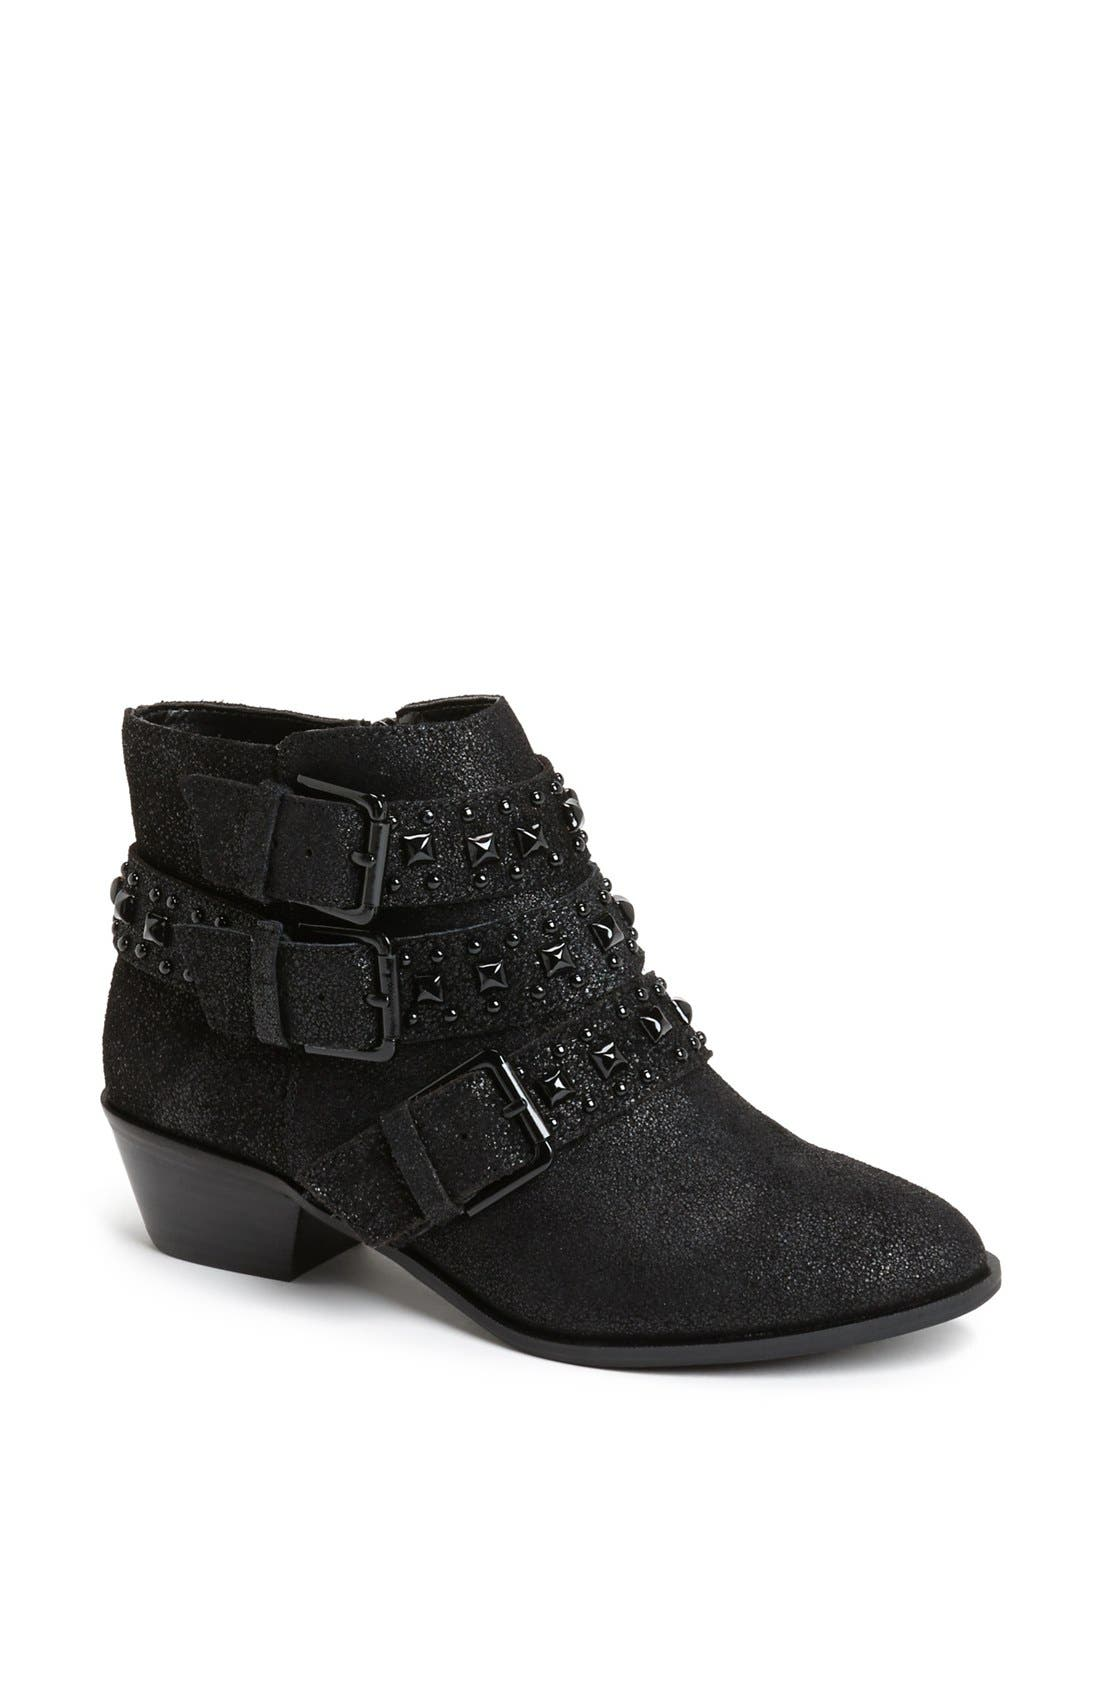 Alternate Image 1 Selected - Sole Society 'Harley' Bootie